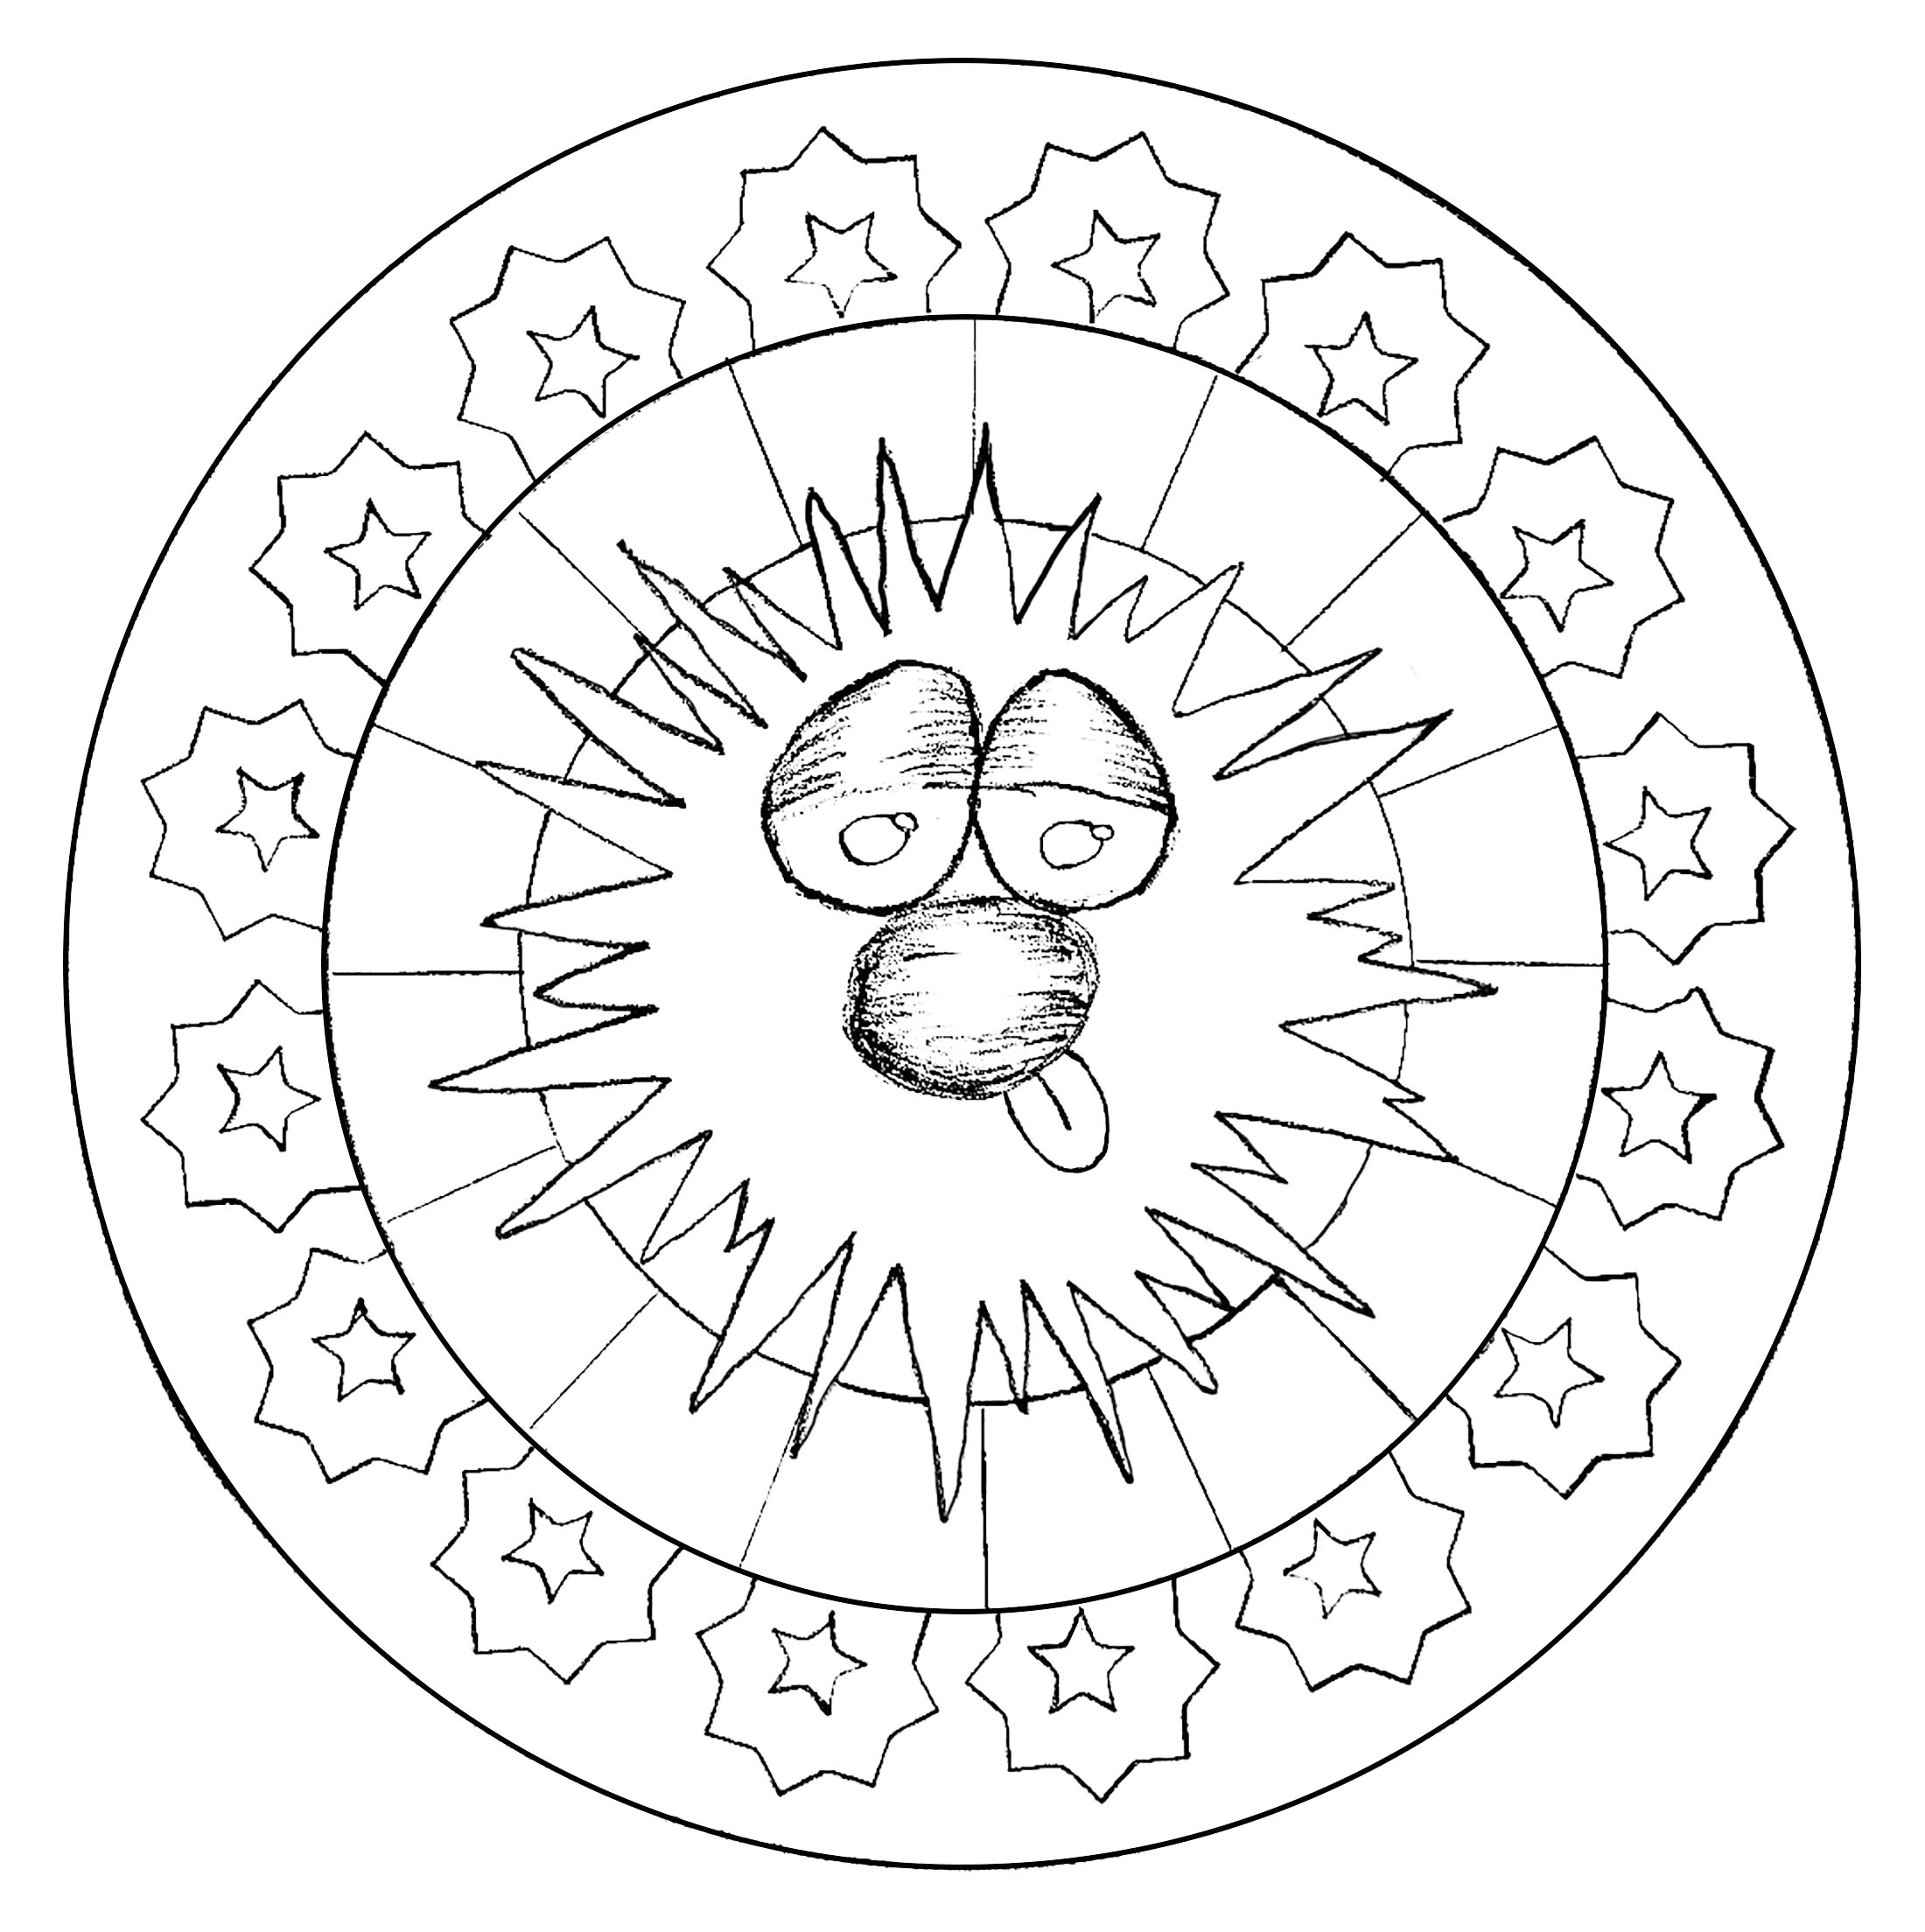 Mandala with funny head (hand drawn) and abstract simple patterns.